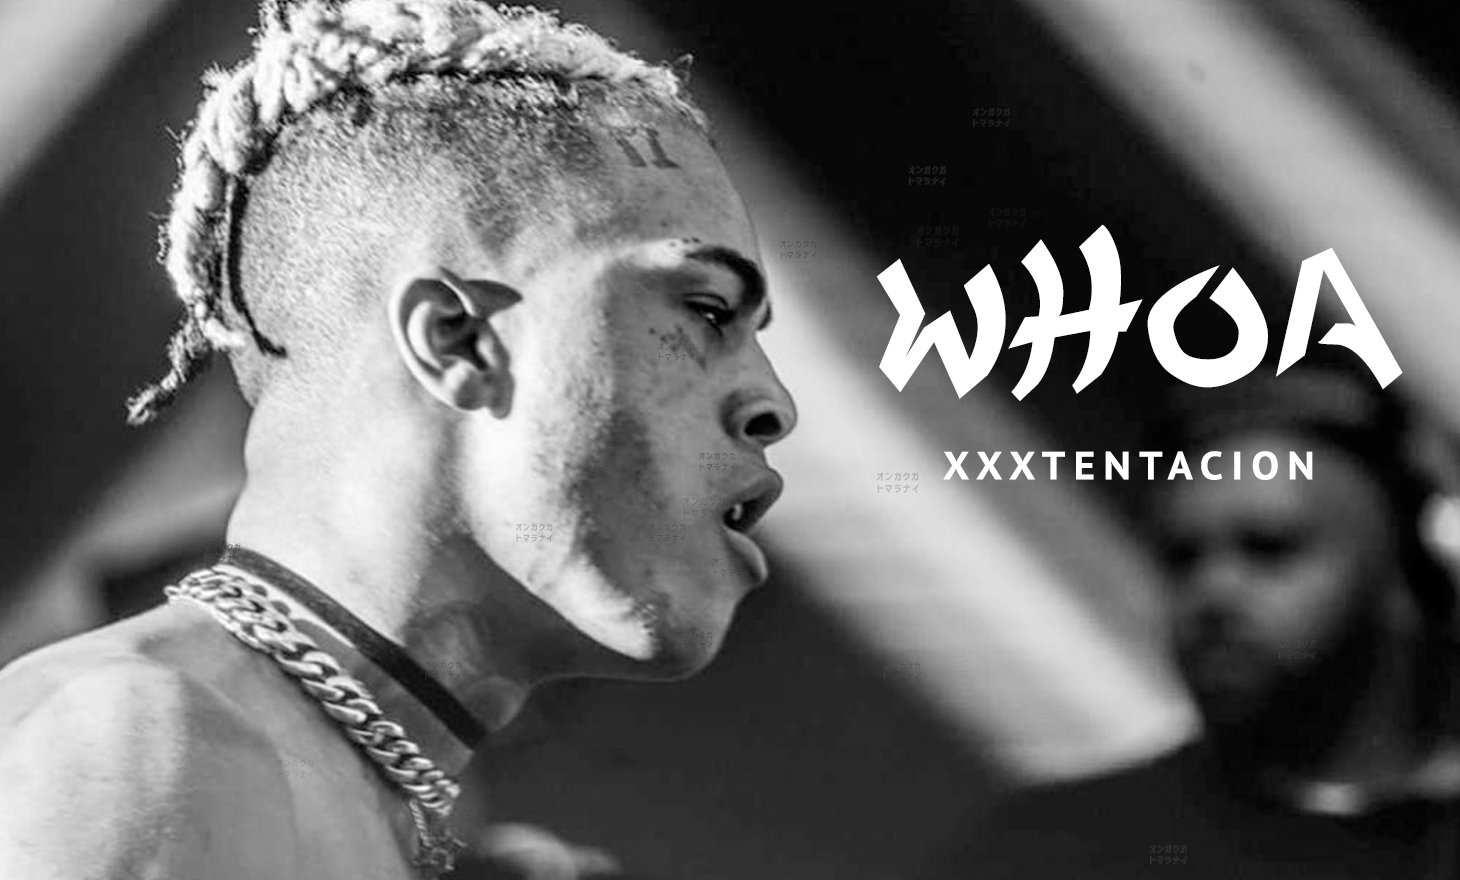 XXXTENTACION : Whoa(Mind in Awe)